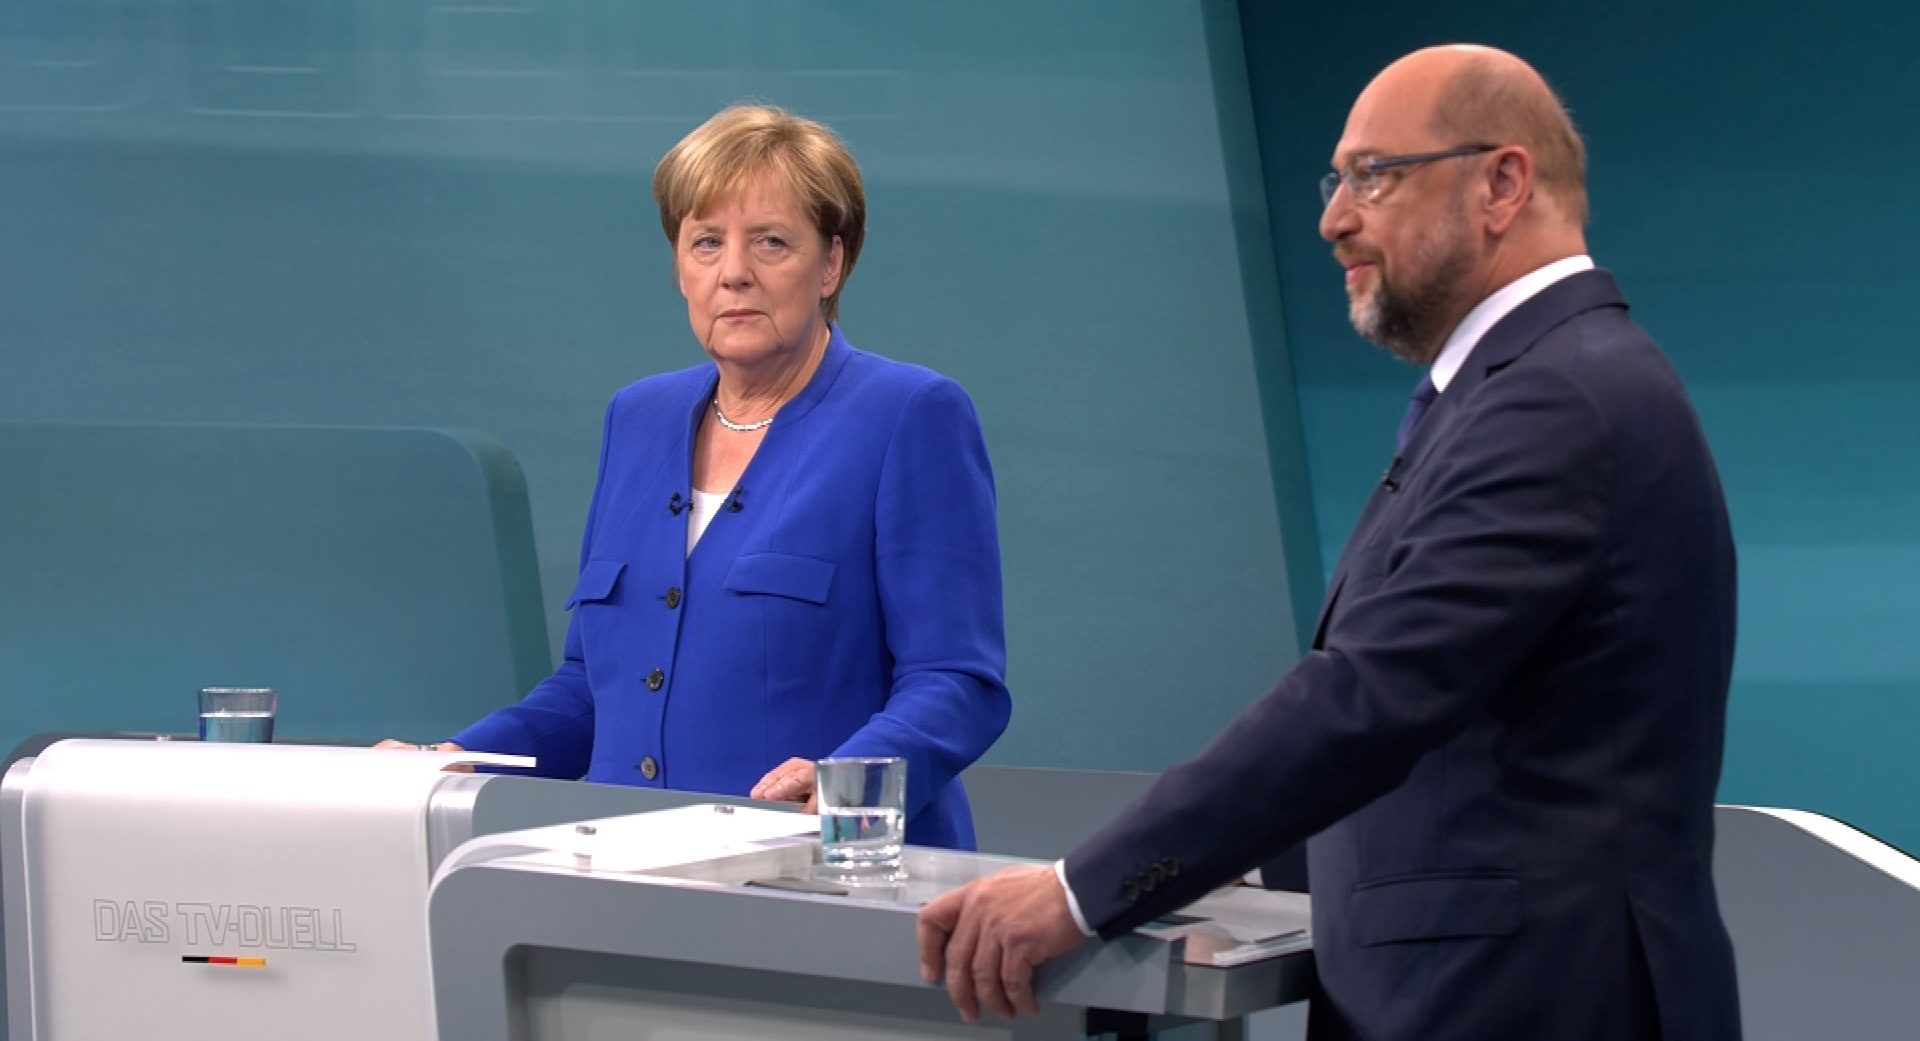 A screen that shows the TV debate between German Chancellor Angela Merkel of the Christian Democratic Union (CDU) and her challenger Germany's Social Democratic Party SPD candidate for chancellor Martin Schulz in Berlin, Germany, September 3, 2017. German voters will take to the polls in a general election on September 24.